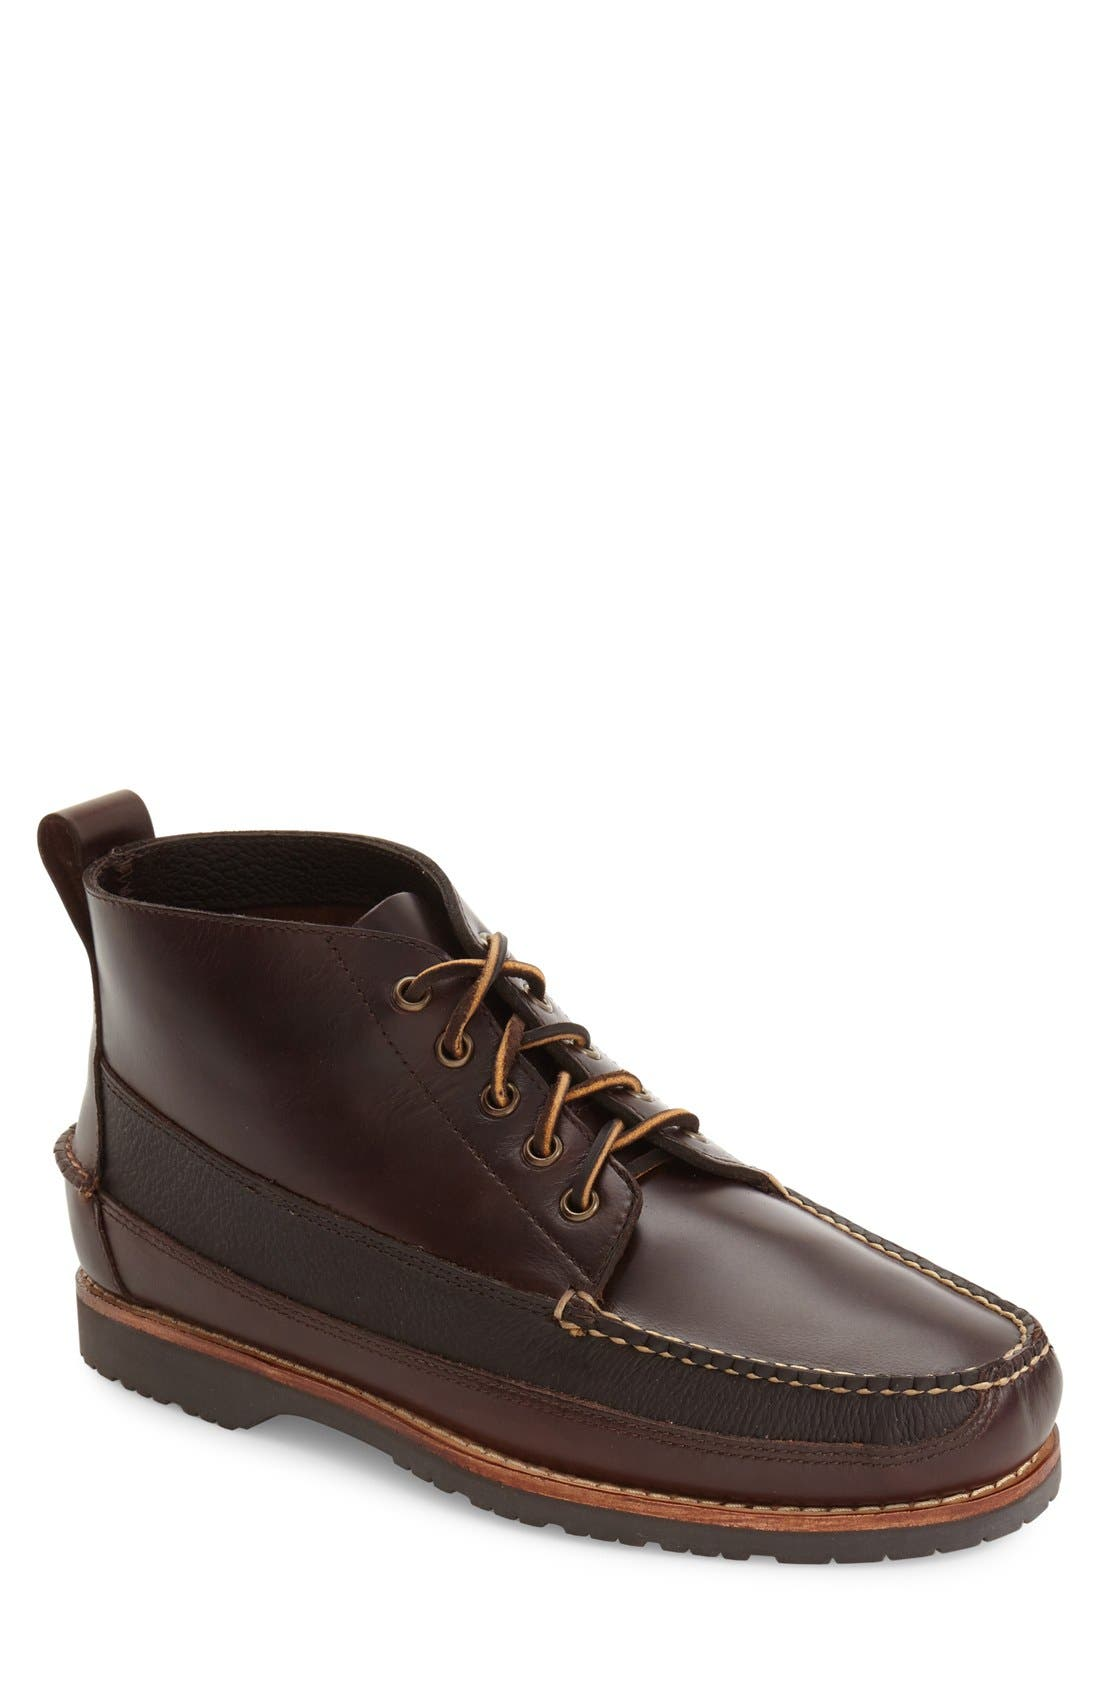 Main Image - G.H. Bass & Co. 'Scott' Chukka Boot (Men)